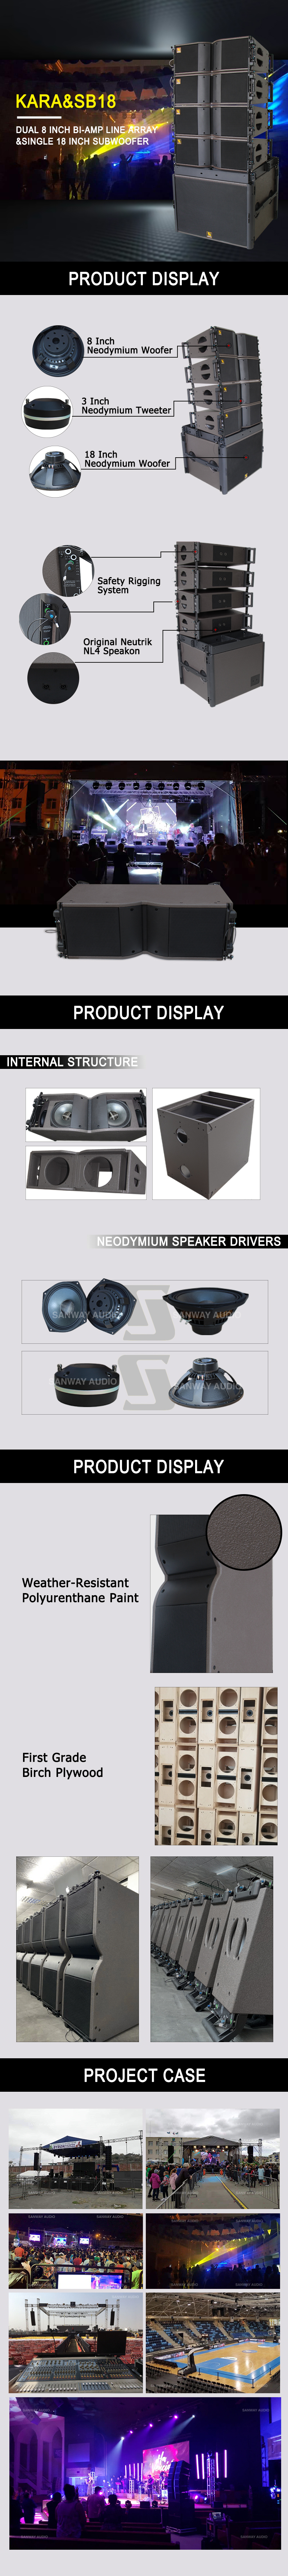 Kara line array and SB18 subwoofer details